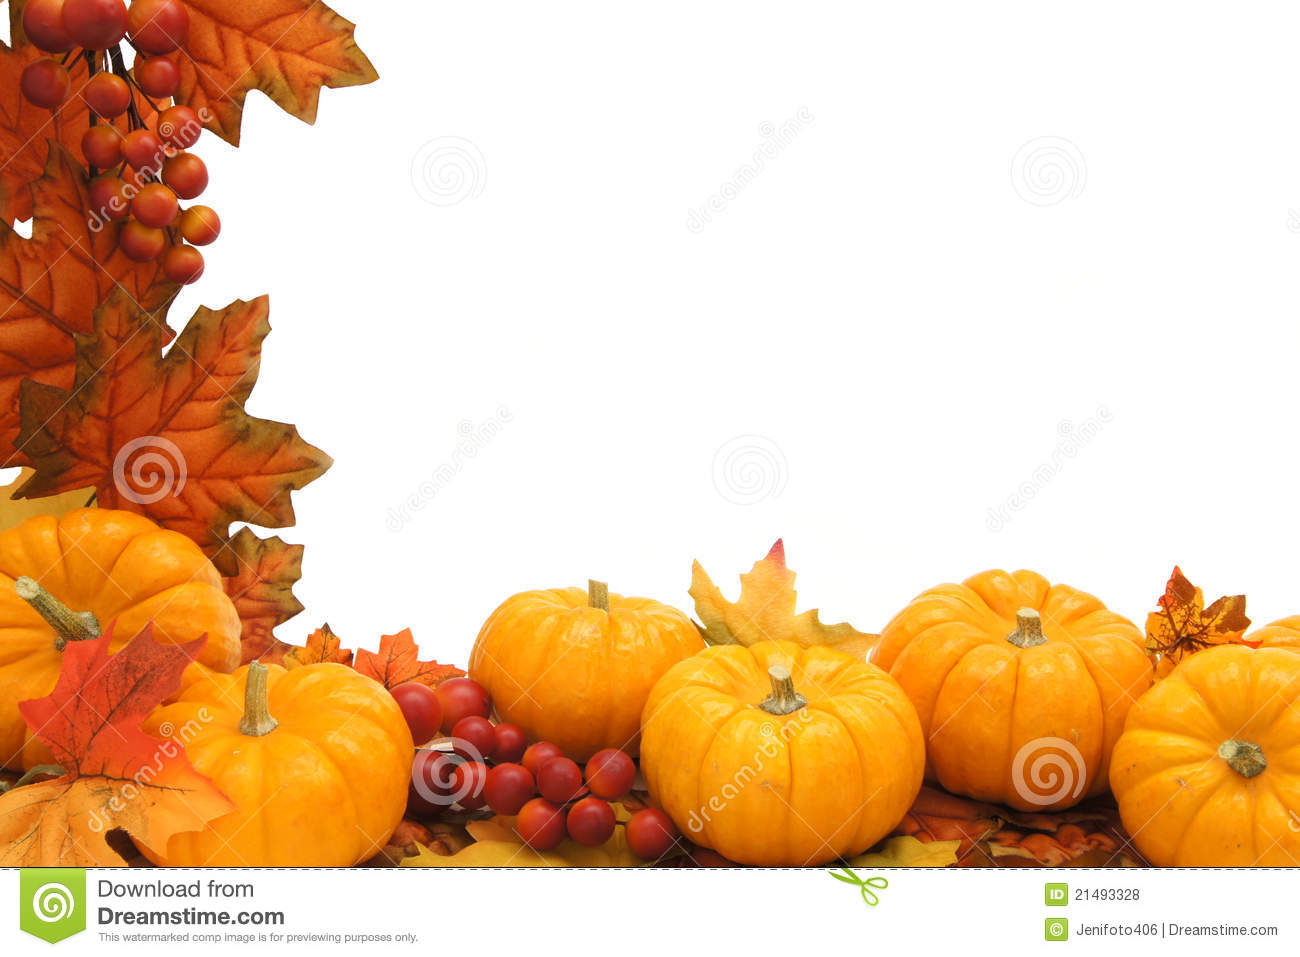 Download Autumn Border Stock Photo Image Of Colorful Edge Golden